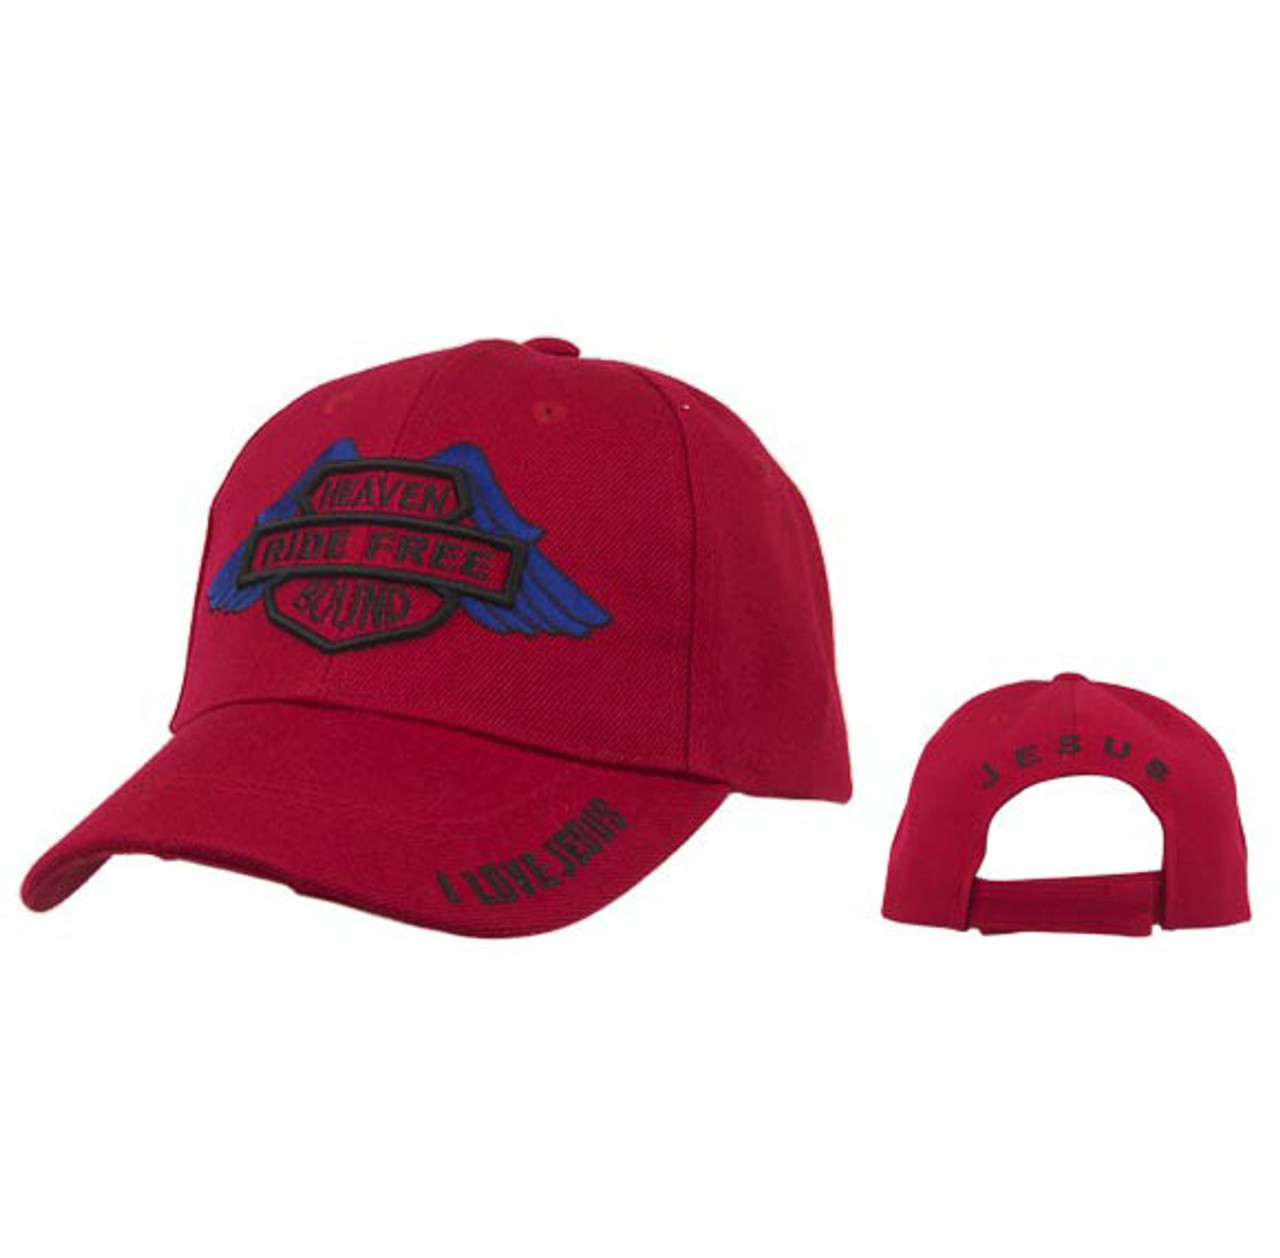 Red Heaven Bound | Ride Free | Wholesale Baseball Caps